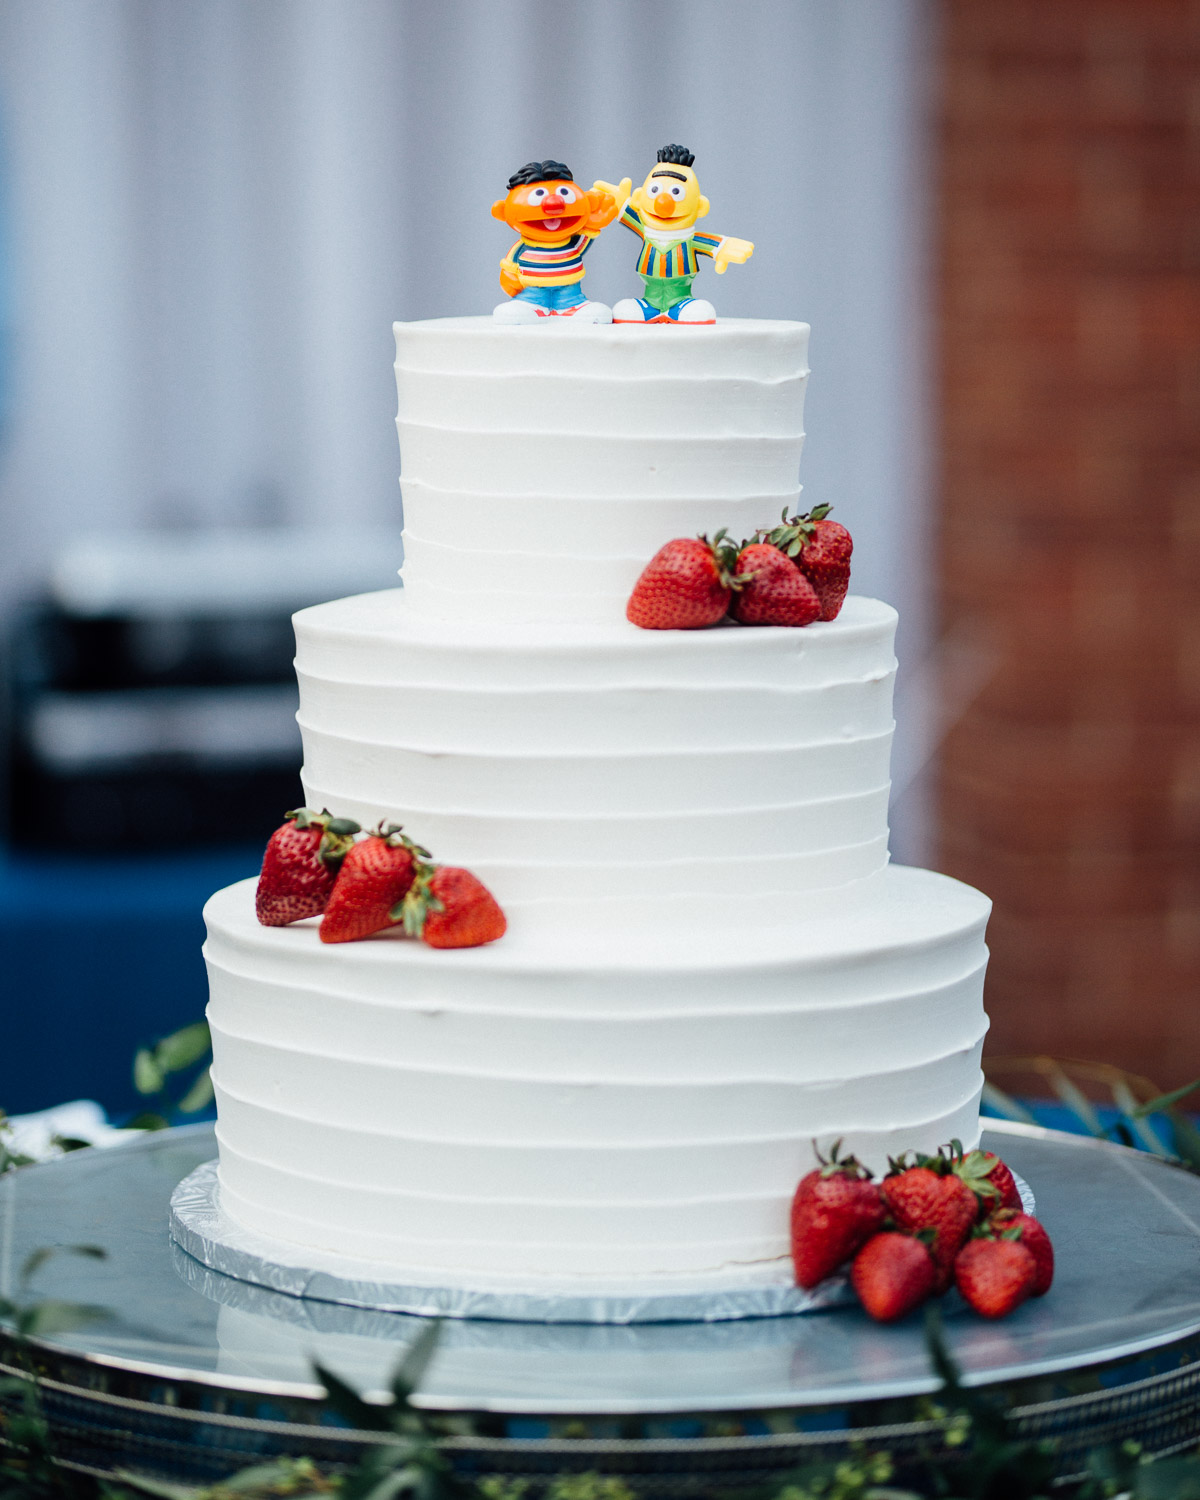 bert-ernie-gay-wedding-cake Cheekwood Garden Wedding | Tom and Guy